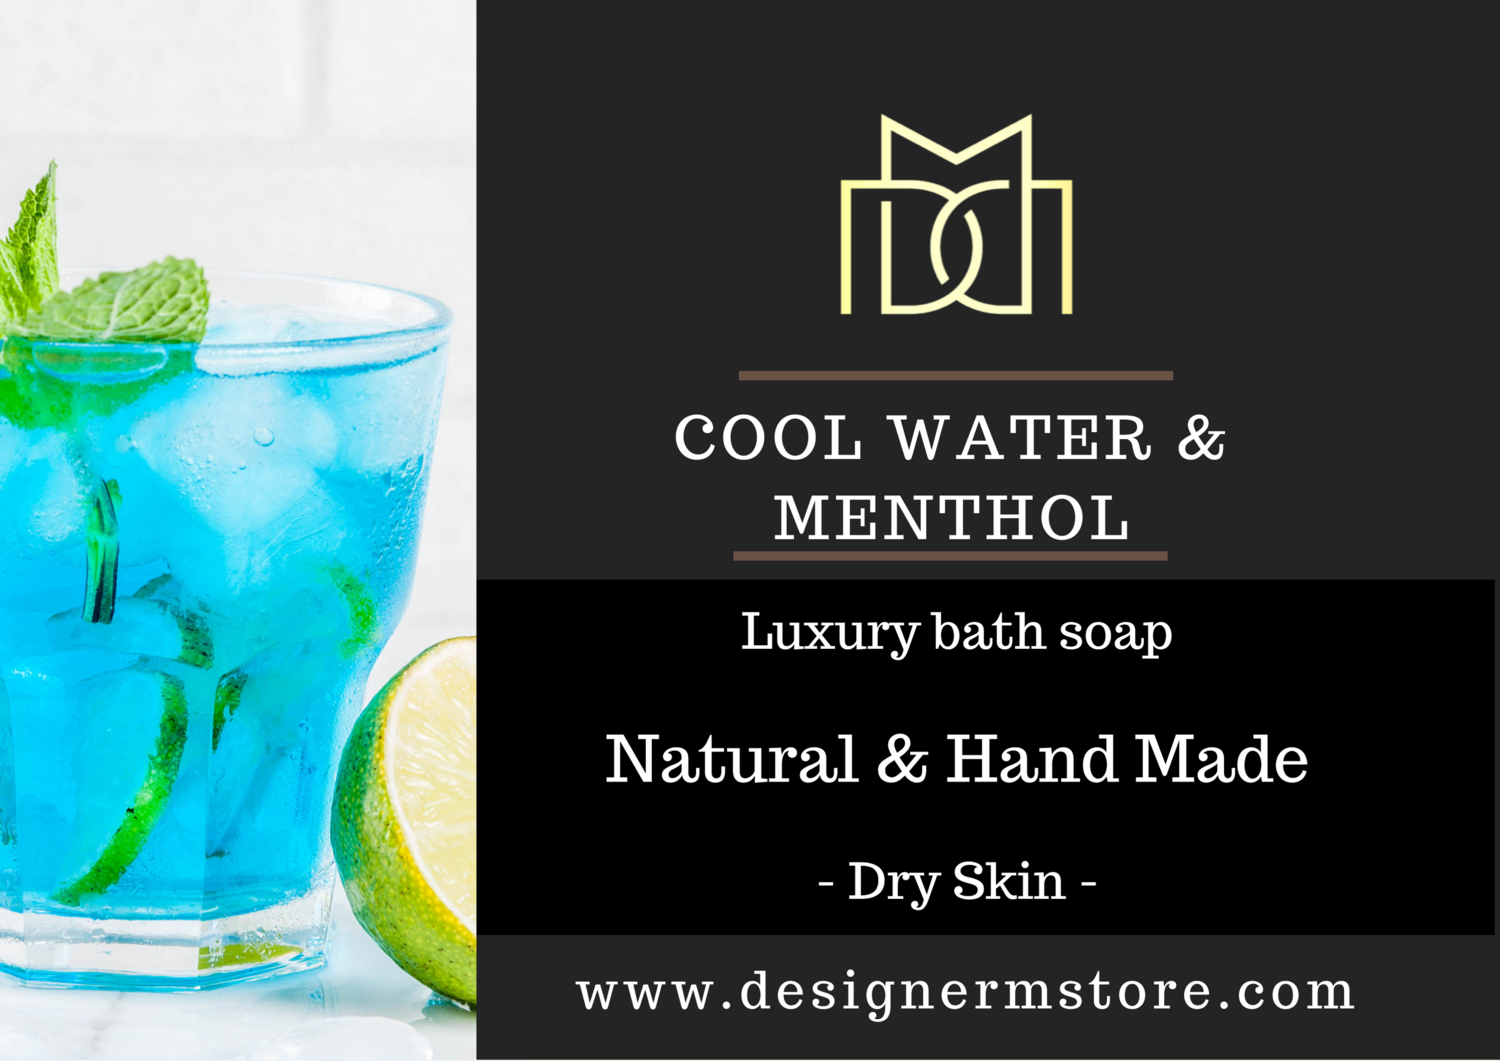 Cool Water & Menthol Organic Soap - Dry Skin